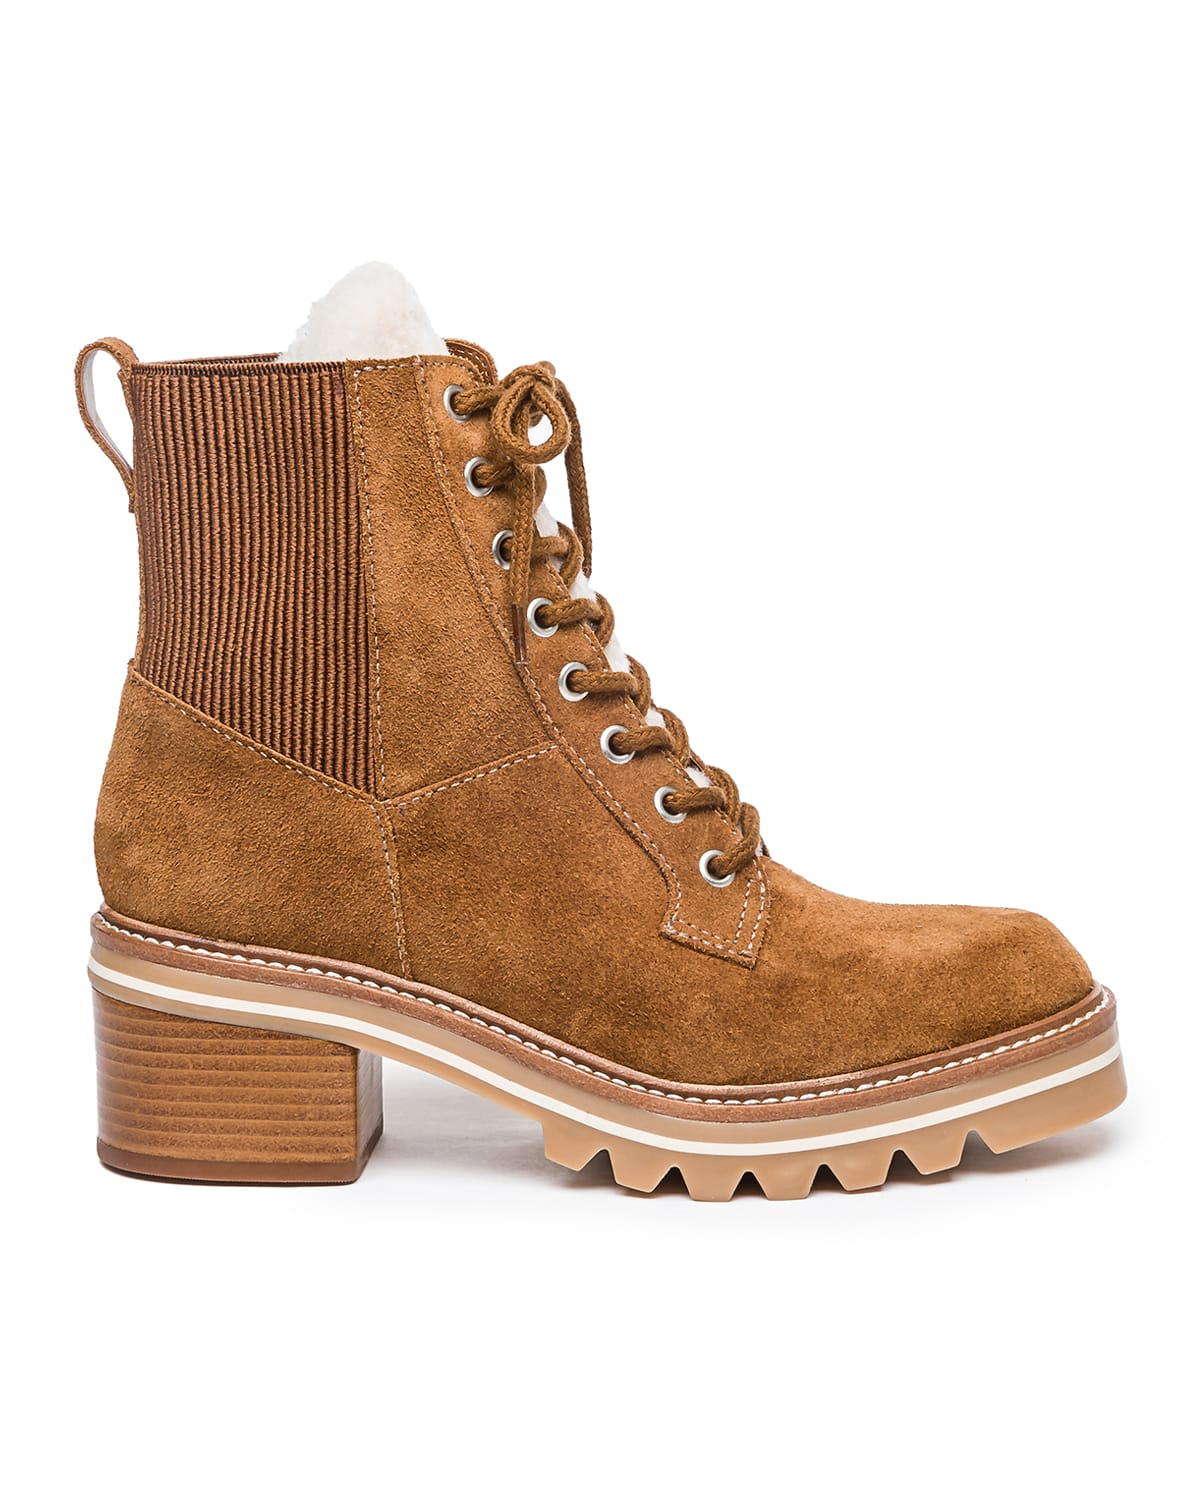 Selena Shearling Suede Combat Boots